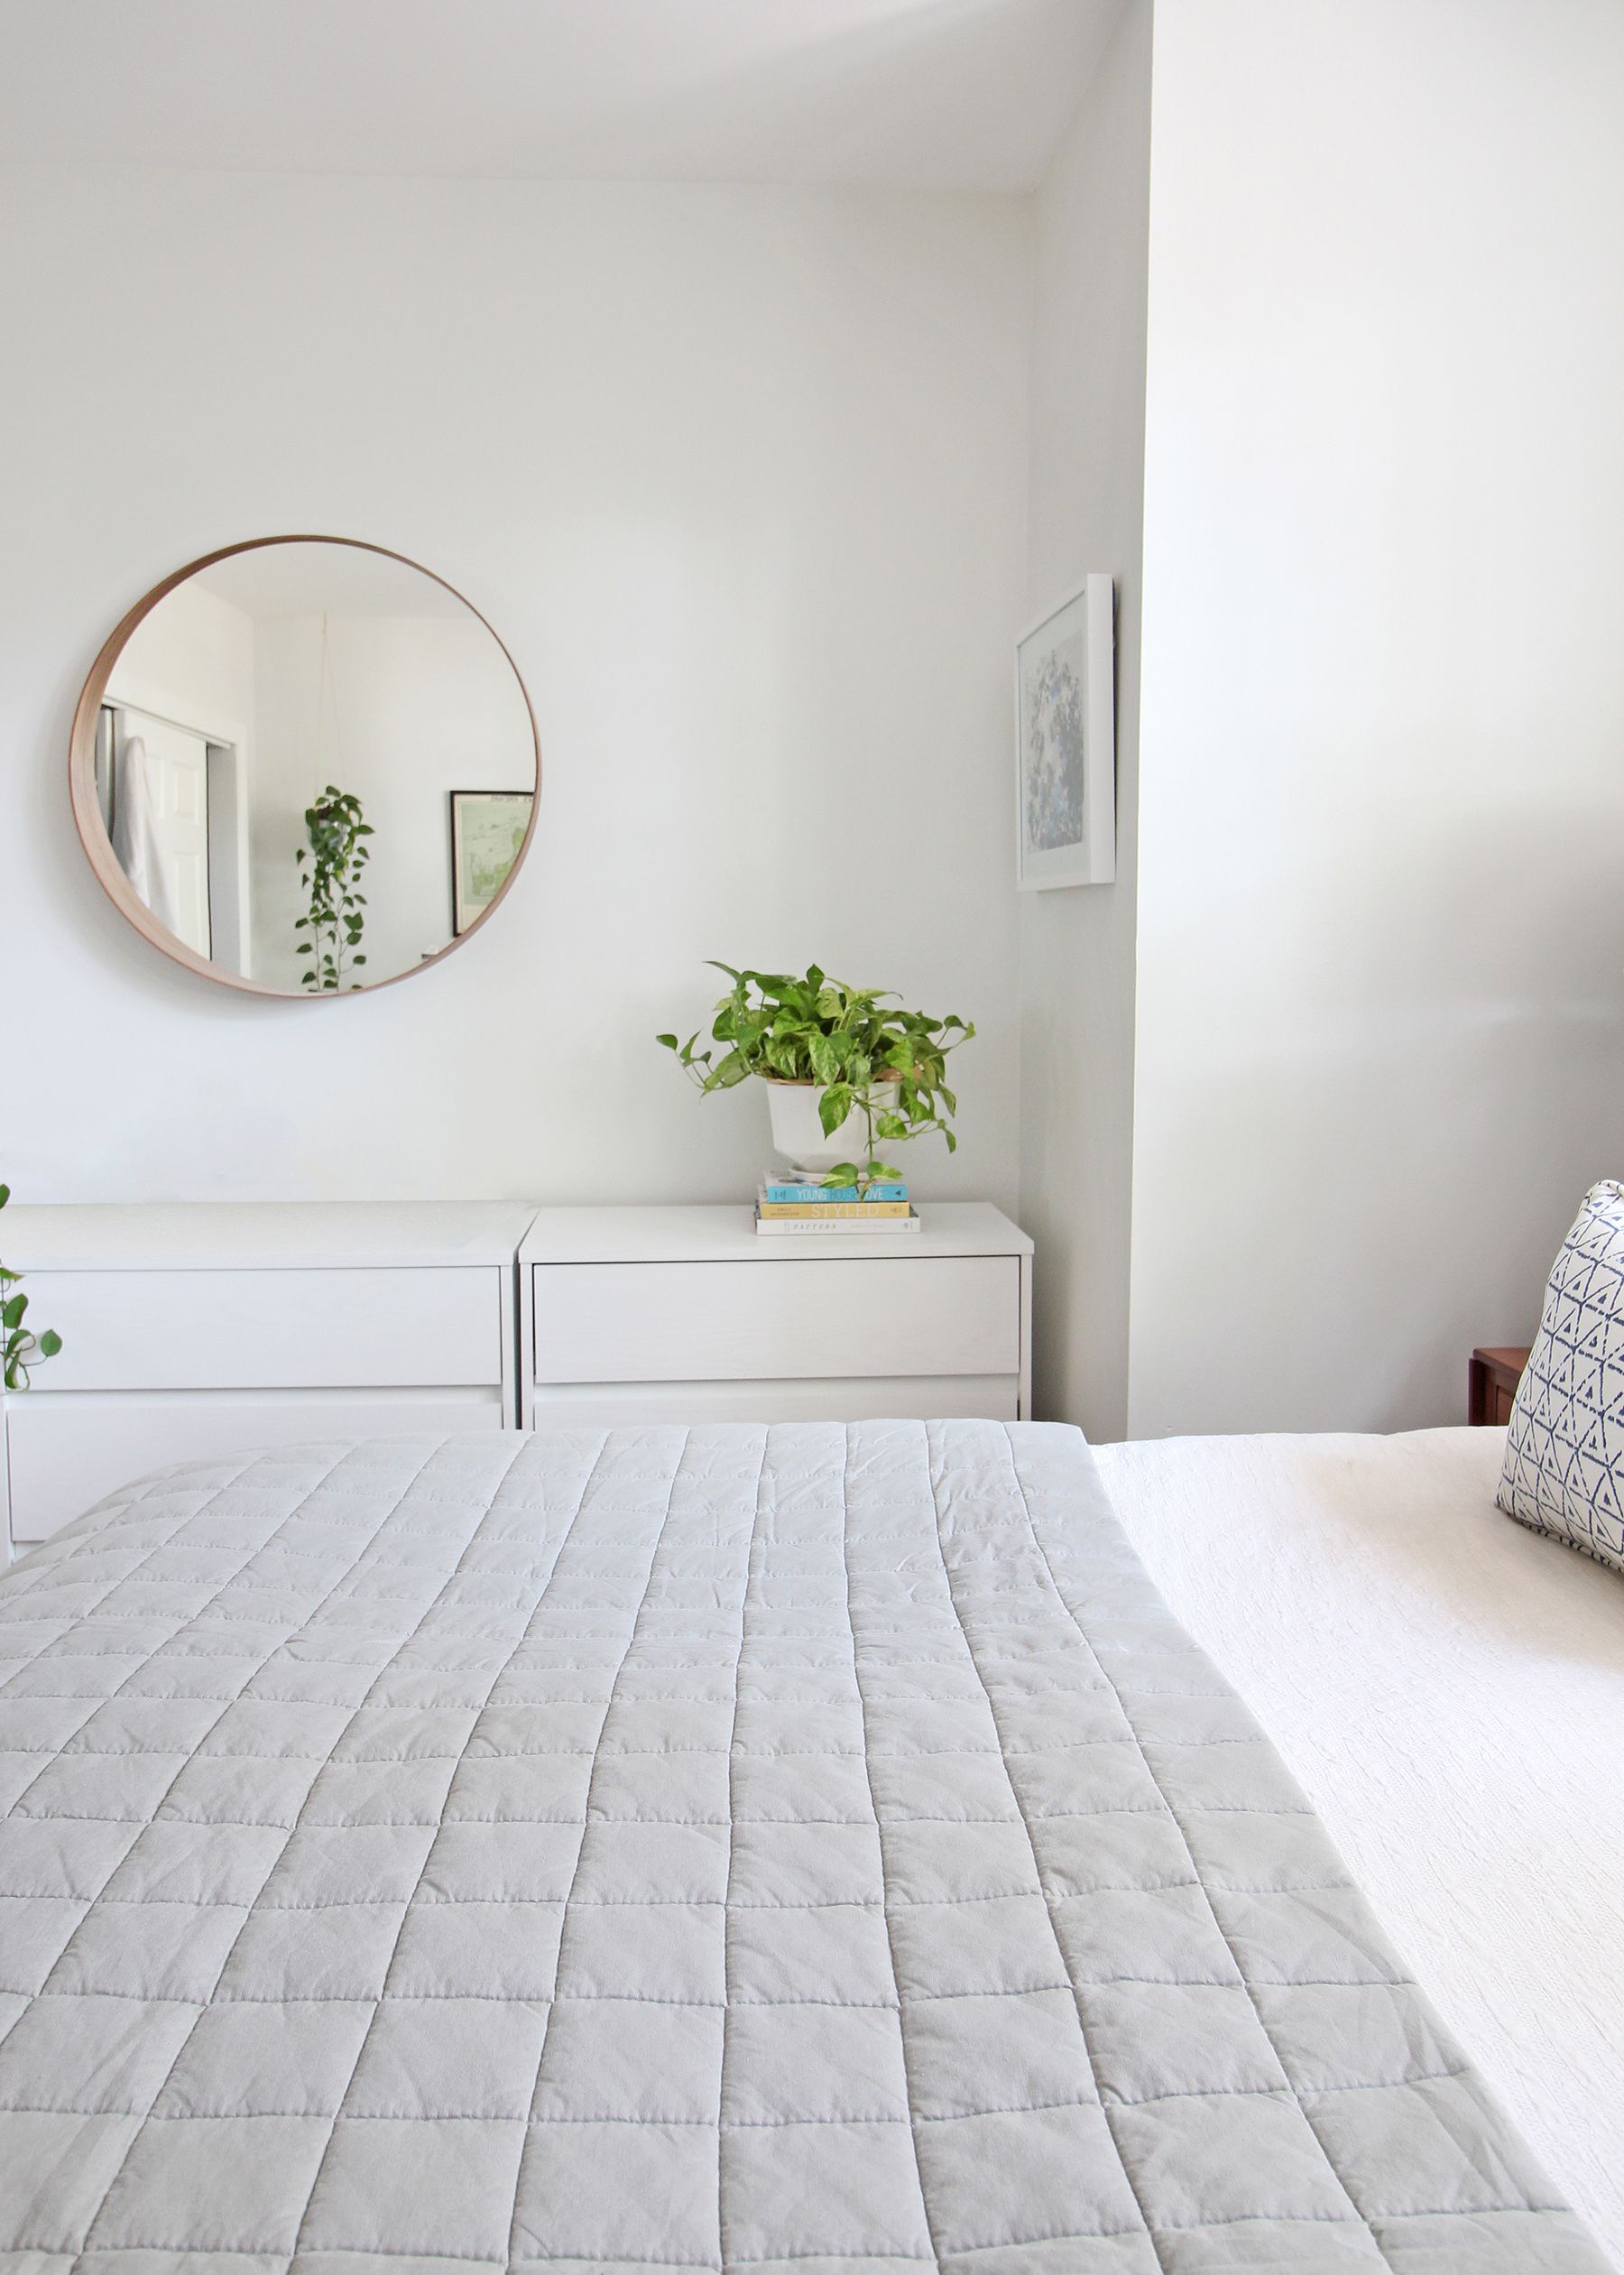 Head to the blog to check out Mix & Match Design Company's mini refresh of her eclectic modern master bedroom. A gray linen quilt works beautifully with her tasseled euro shams, watercolor shams, and blue and white lumbar pillows.